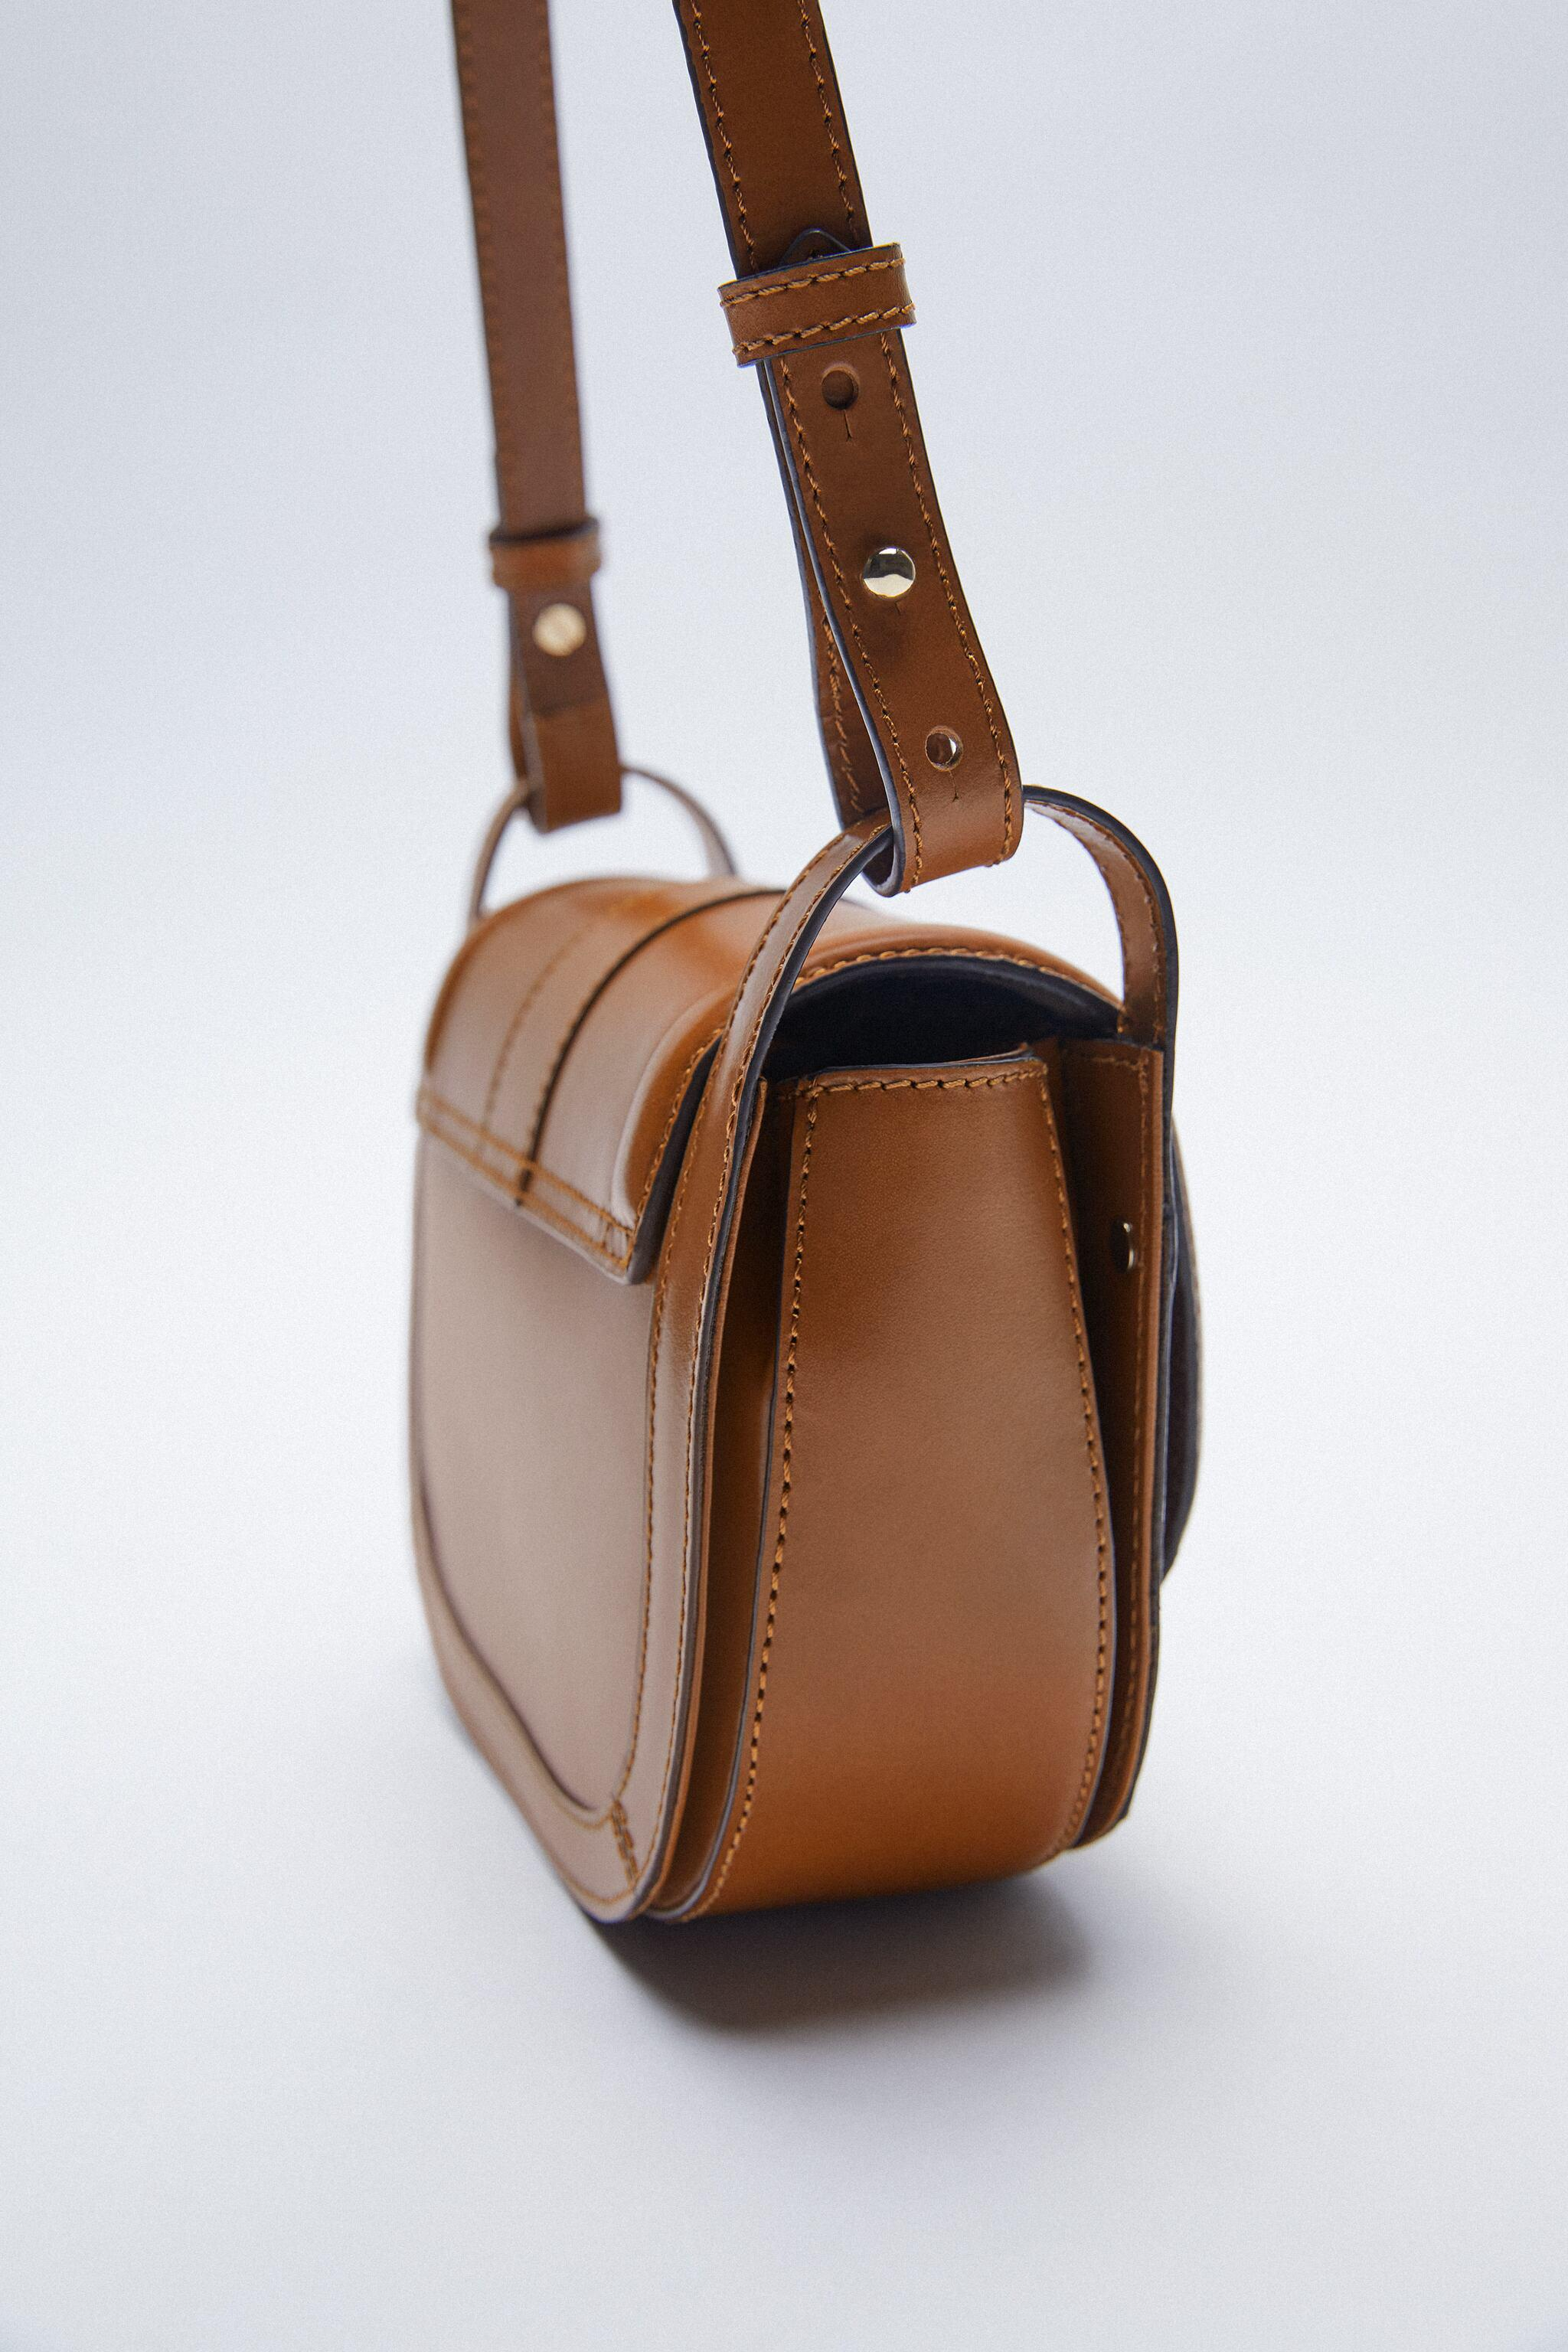 OVAL LEATHER CROSSBODY BAG WITH BUCKLE 4